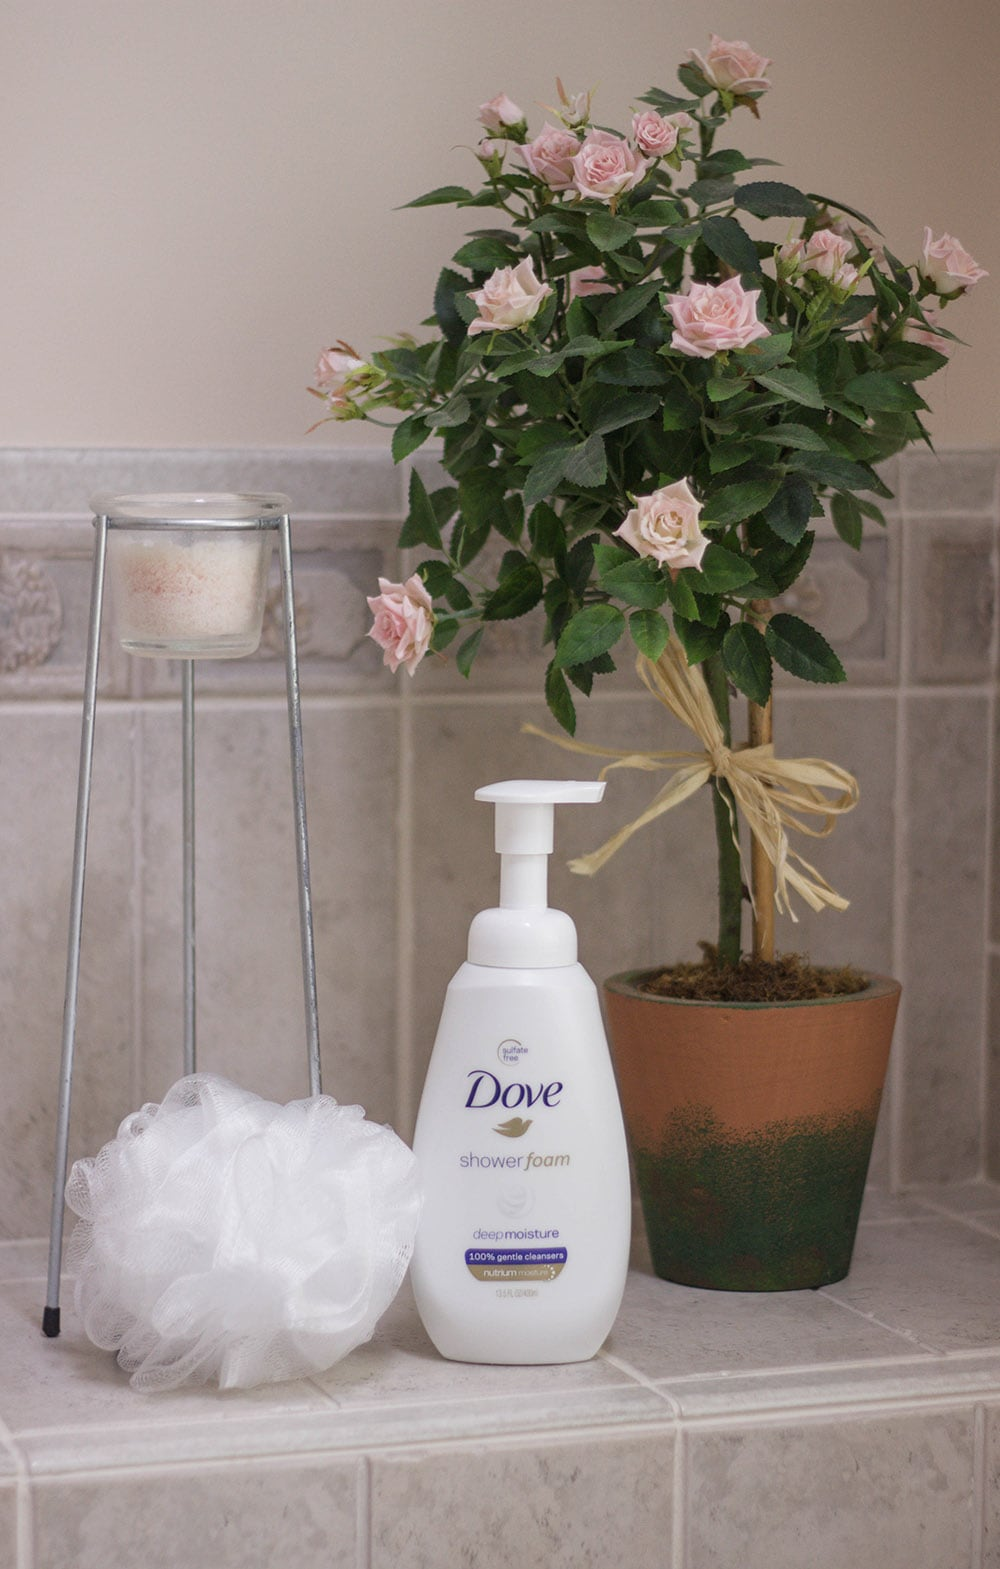 Dove shower foam and a bath poof